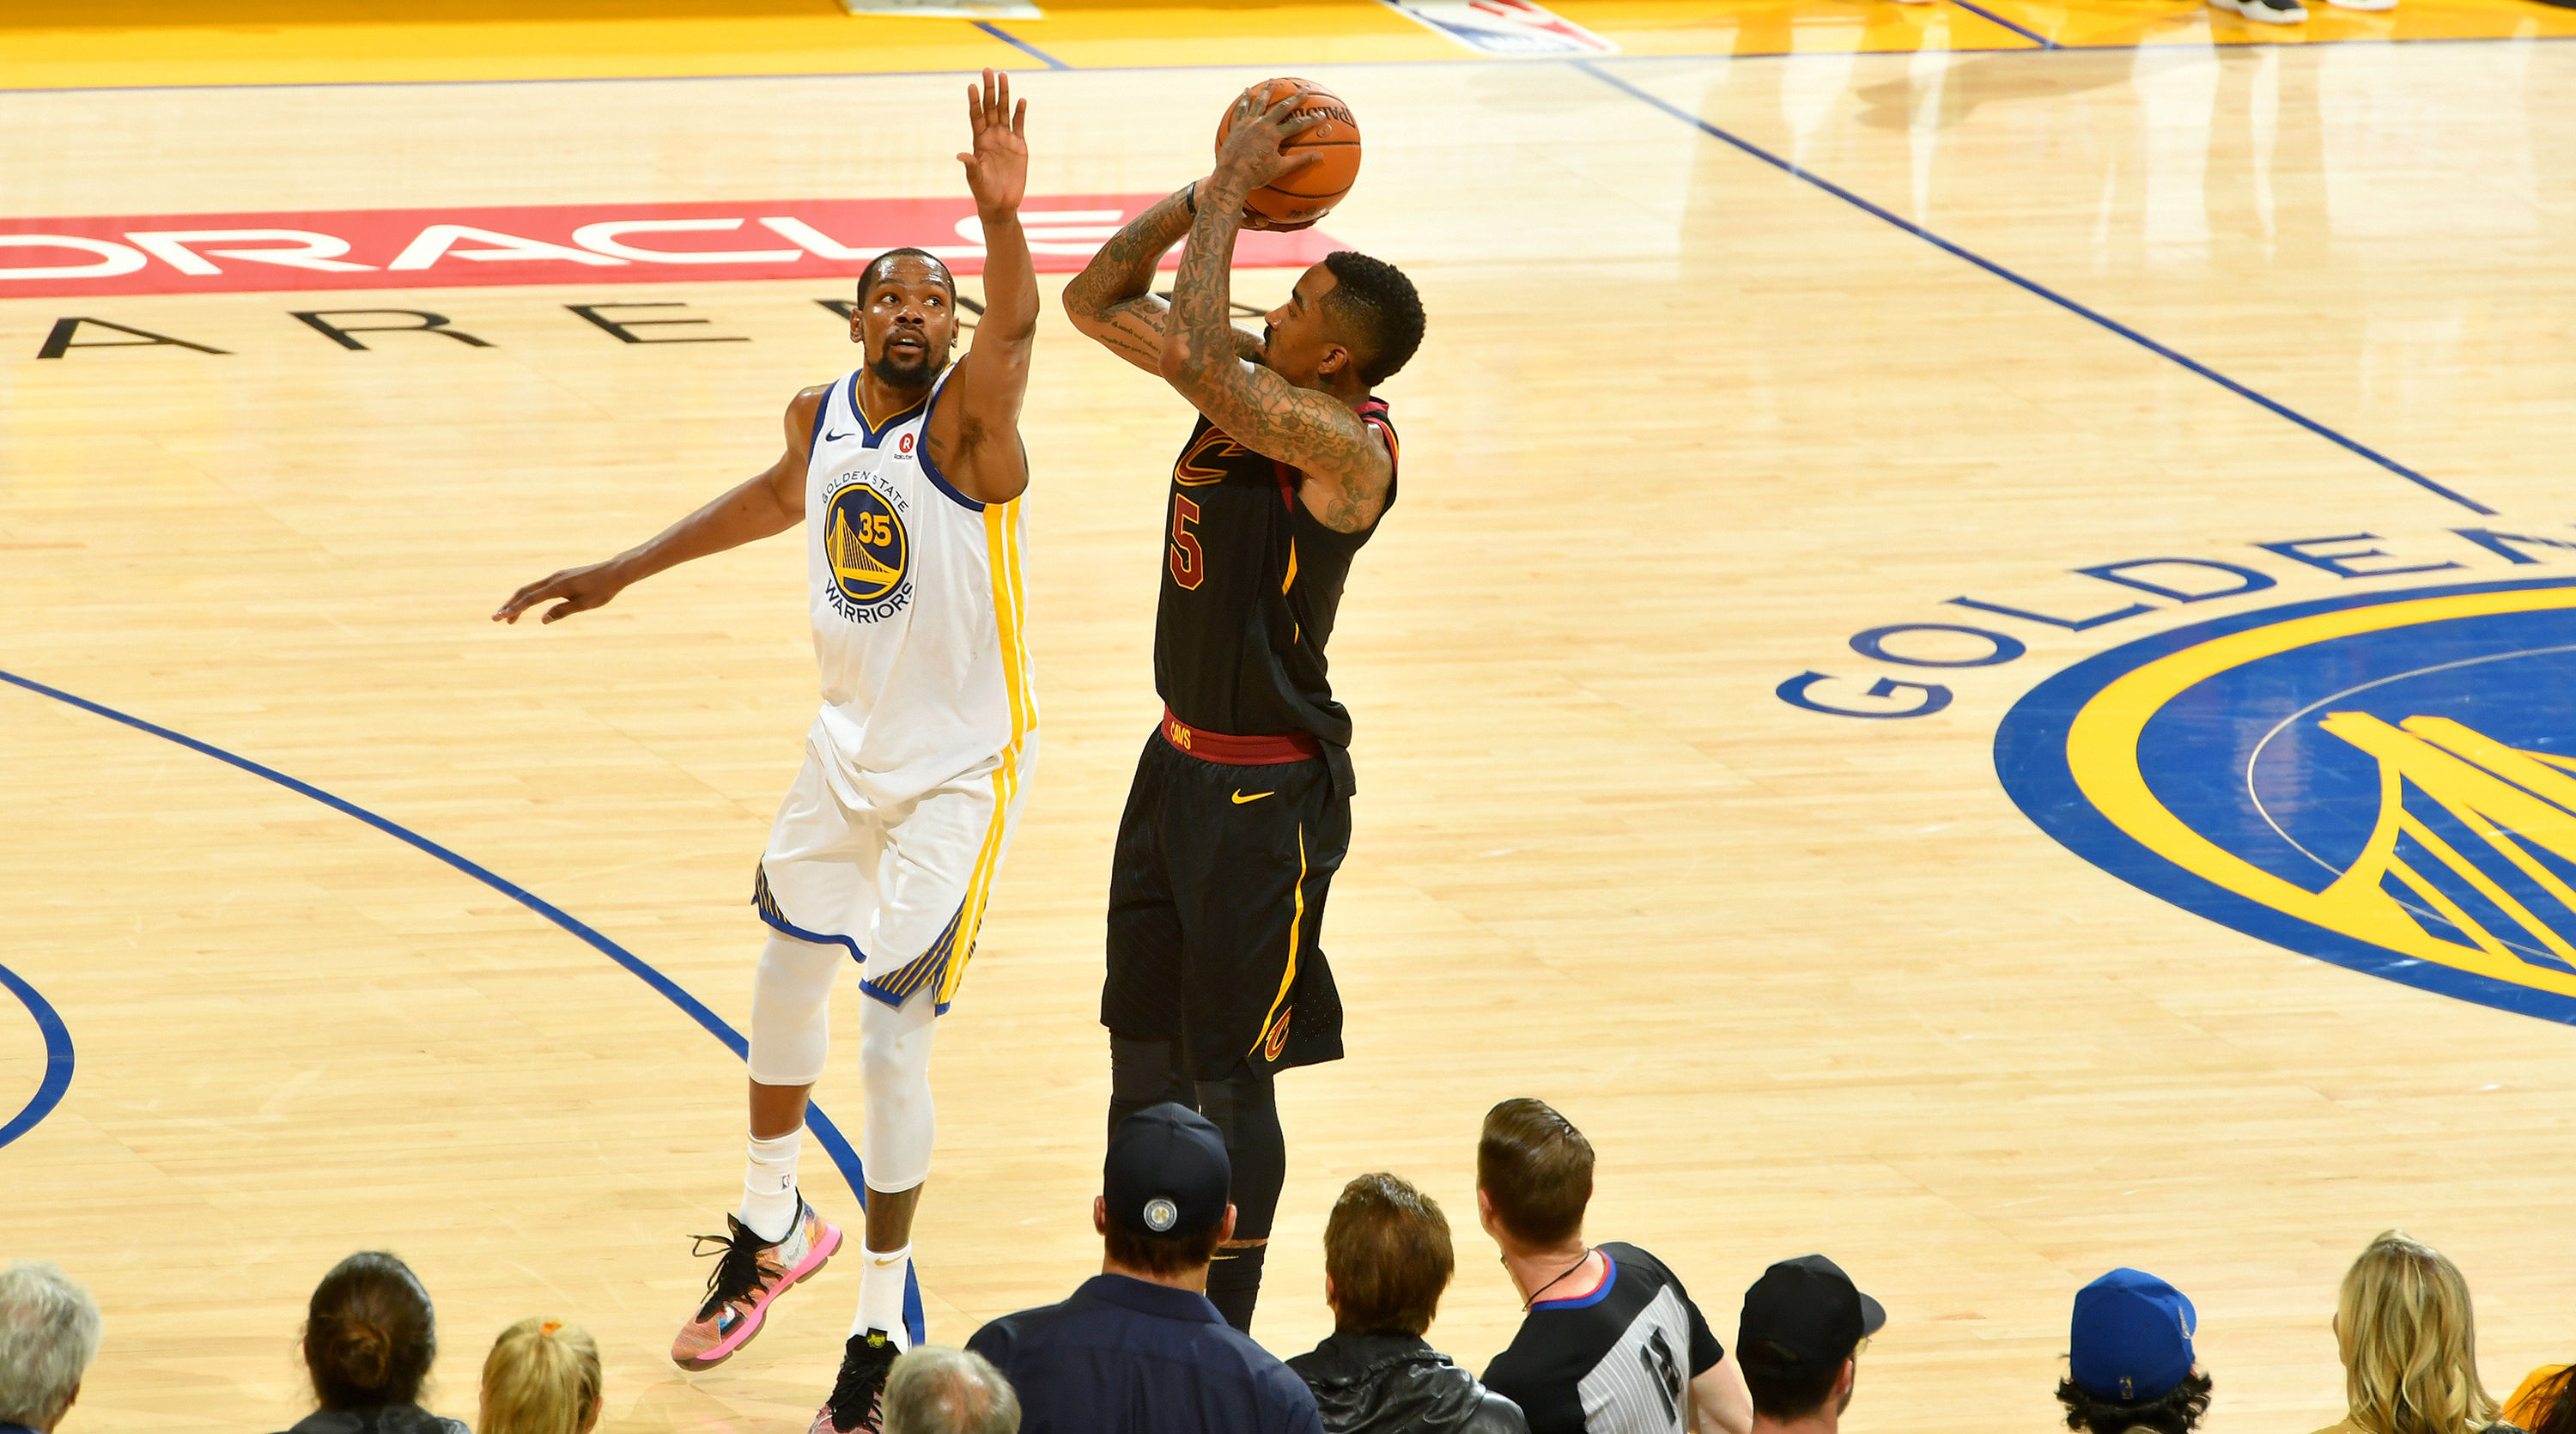 Andre Iguodala trolled media, telling them he feels 'terrible'